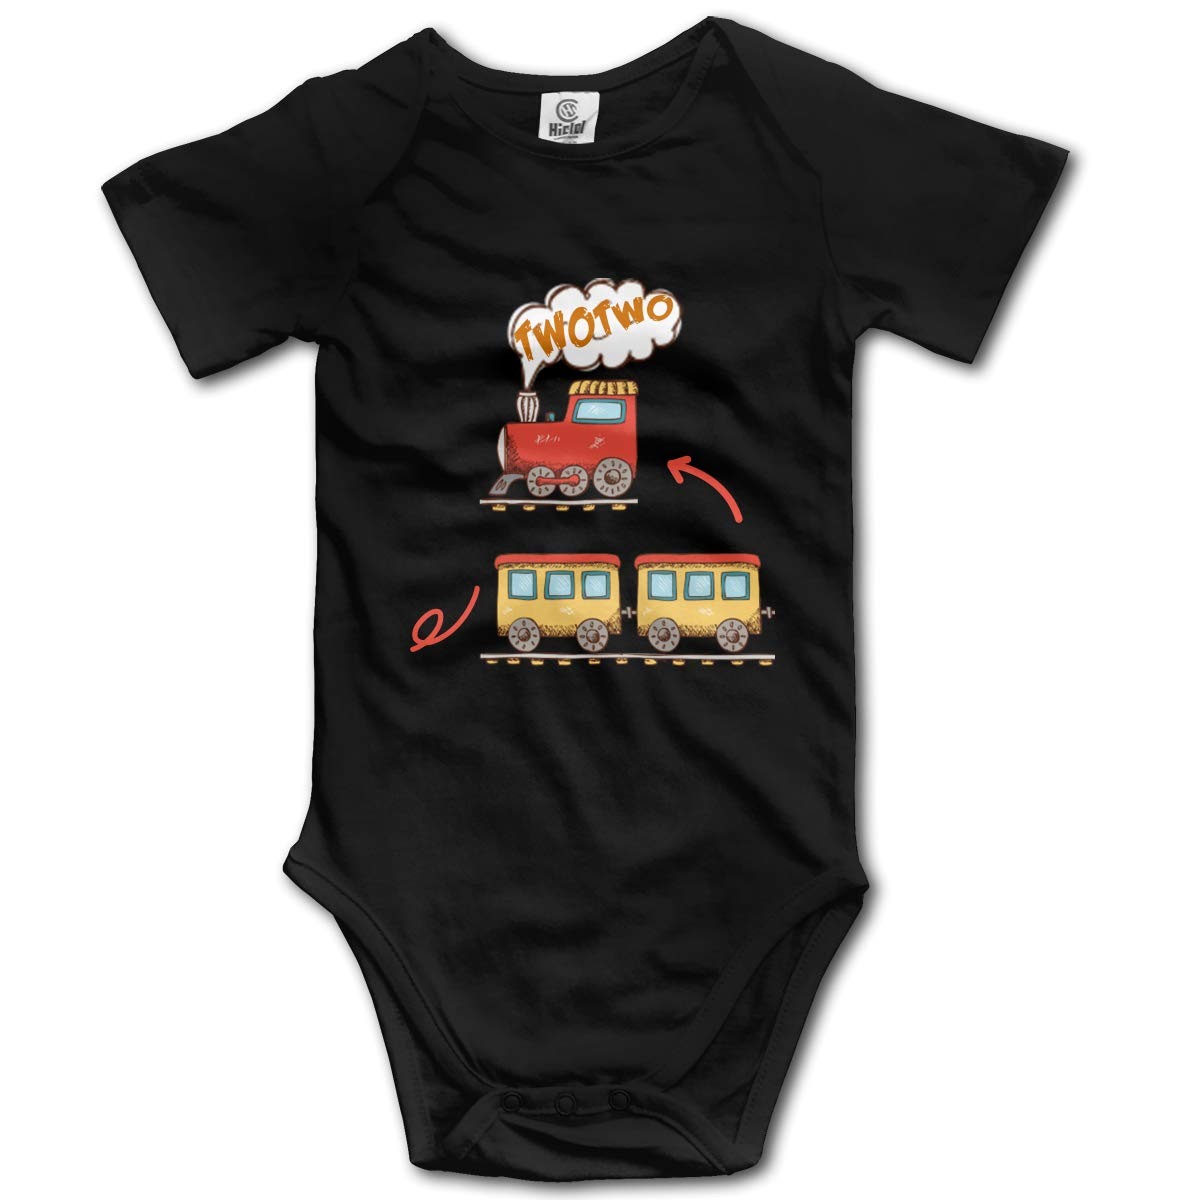 You are Late Again Chocolate Angry Lollipop Boys /& Girls Black Short Sleeve Romper Bodysuits for 0-24 Months